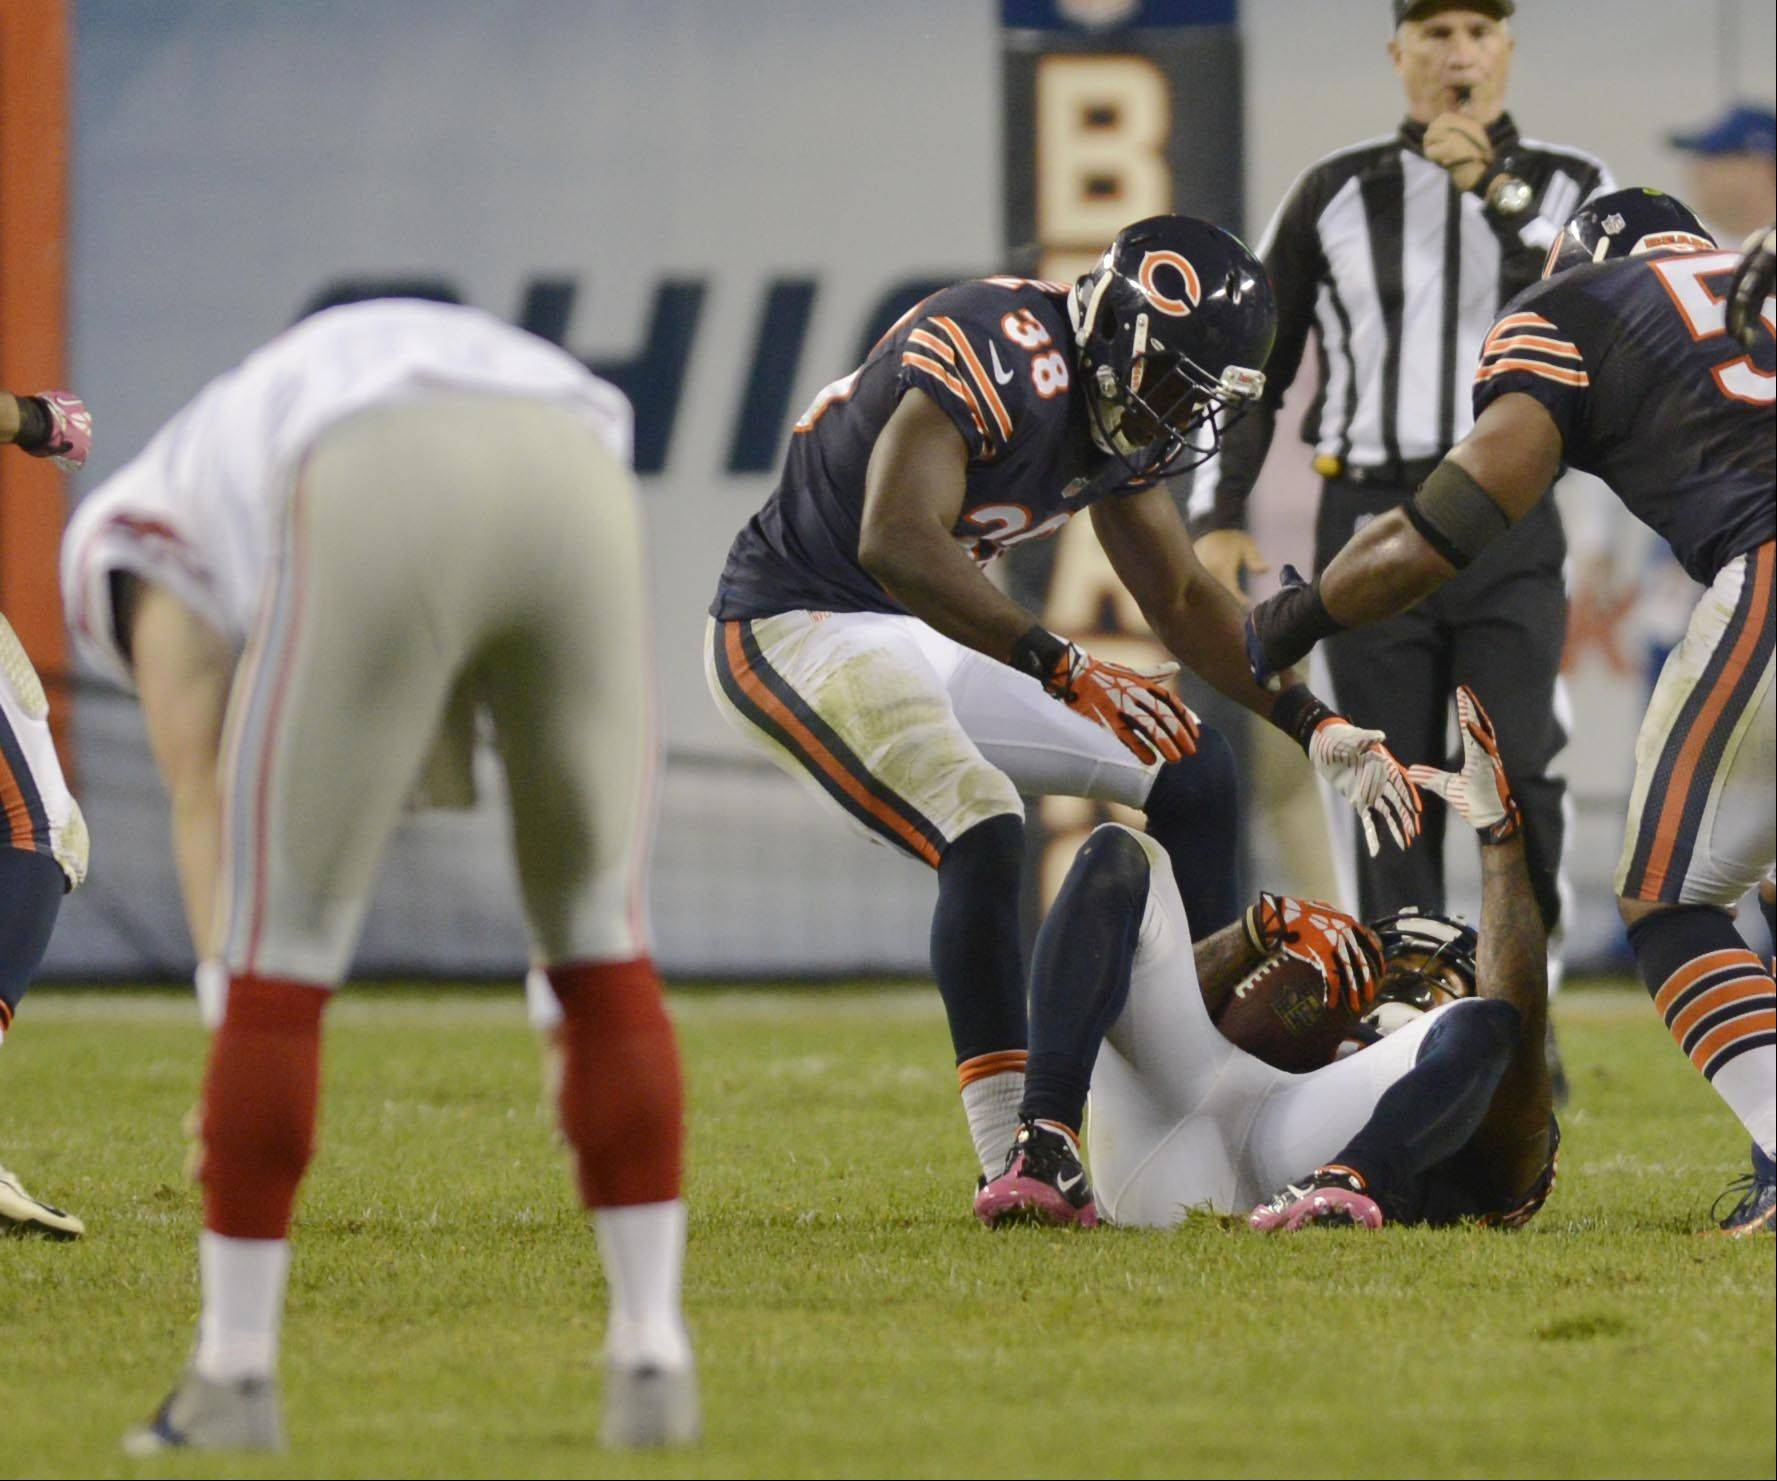 Chicago Bears cornerback Tim Jennings is helped up by teammates after his second interception of New York Giants quarterback Eli Manning, left, Thursday night at Soldier Field in Chicago.